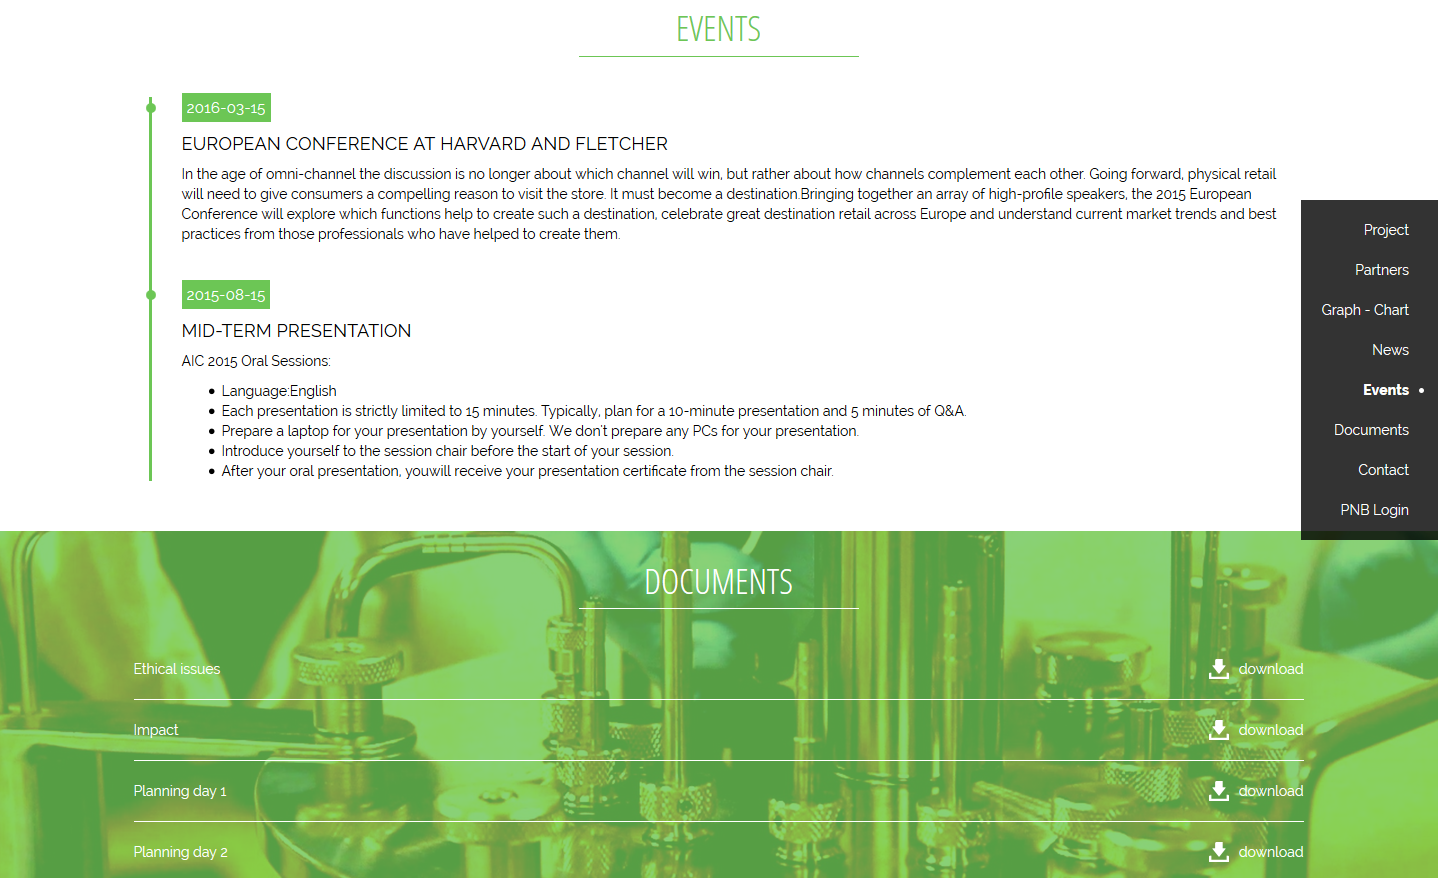 One page public website - Events & documents